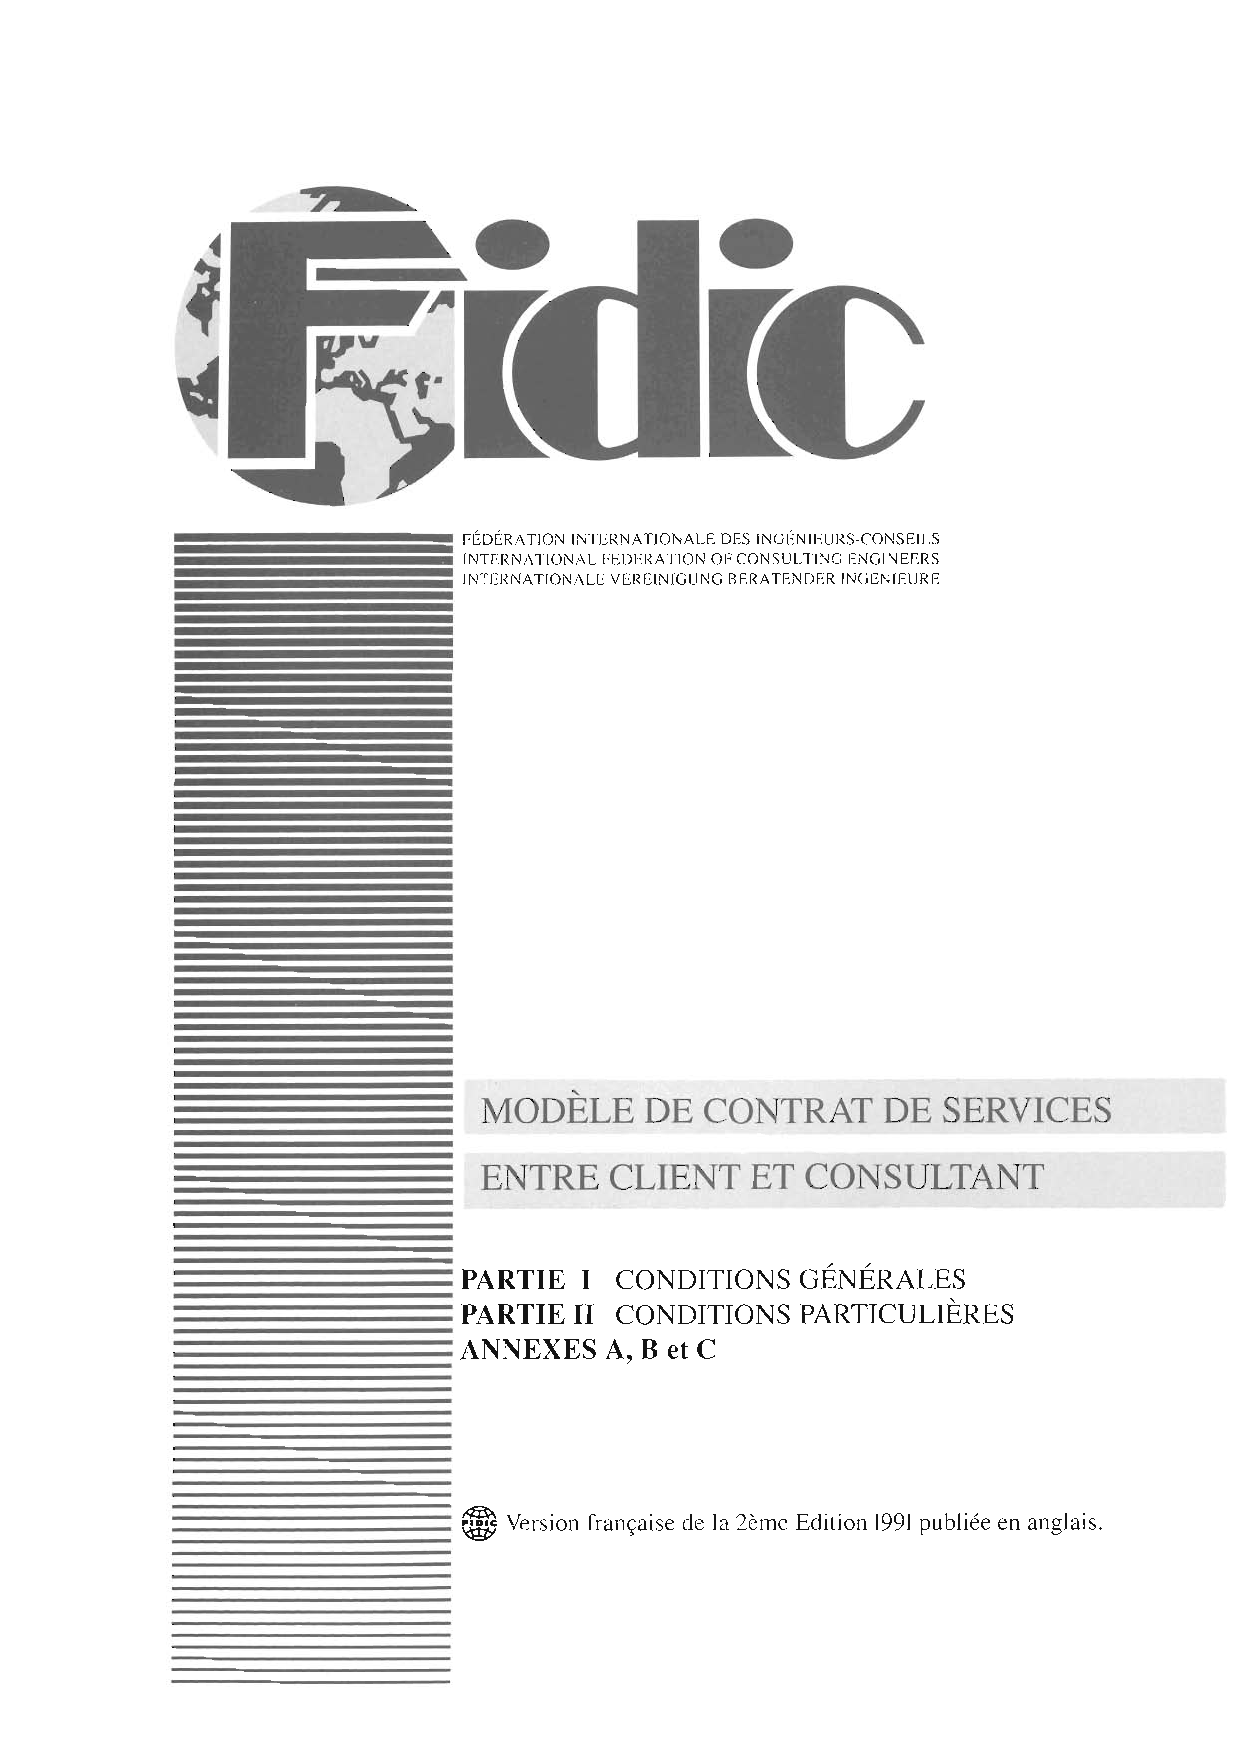 Fidic Client Consultant Model Services Agreement 2nd Ed 1991 White Book International Federation Of Consulting Engineers